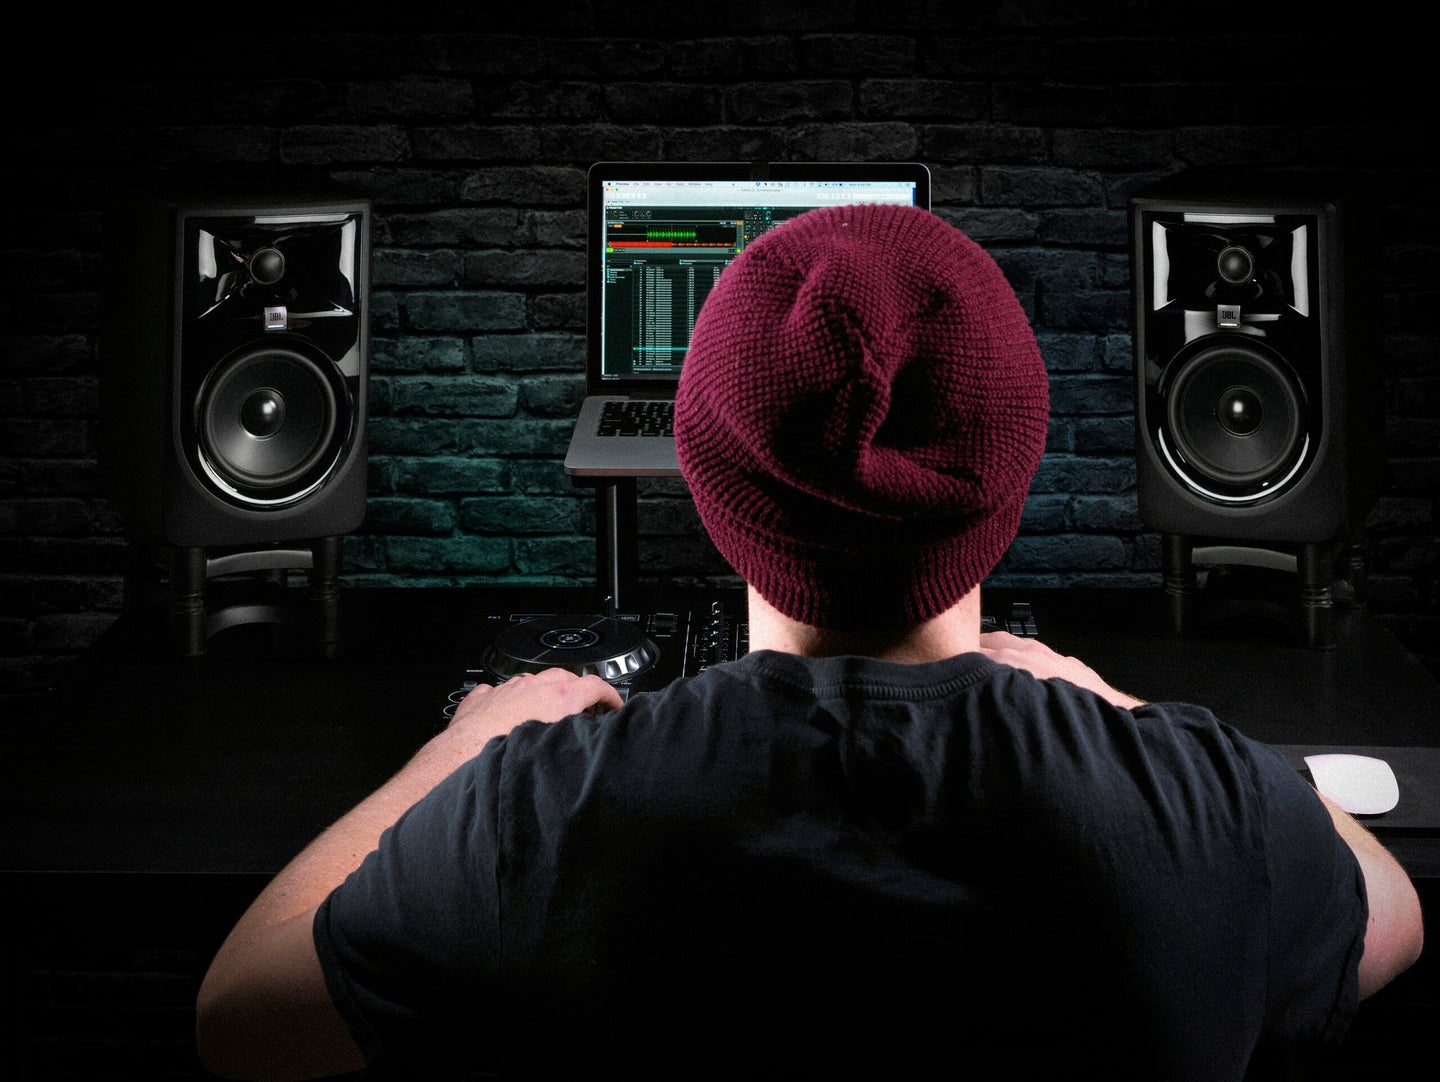 DJ/producer in a home studio with JBL monitors